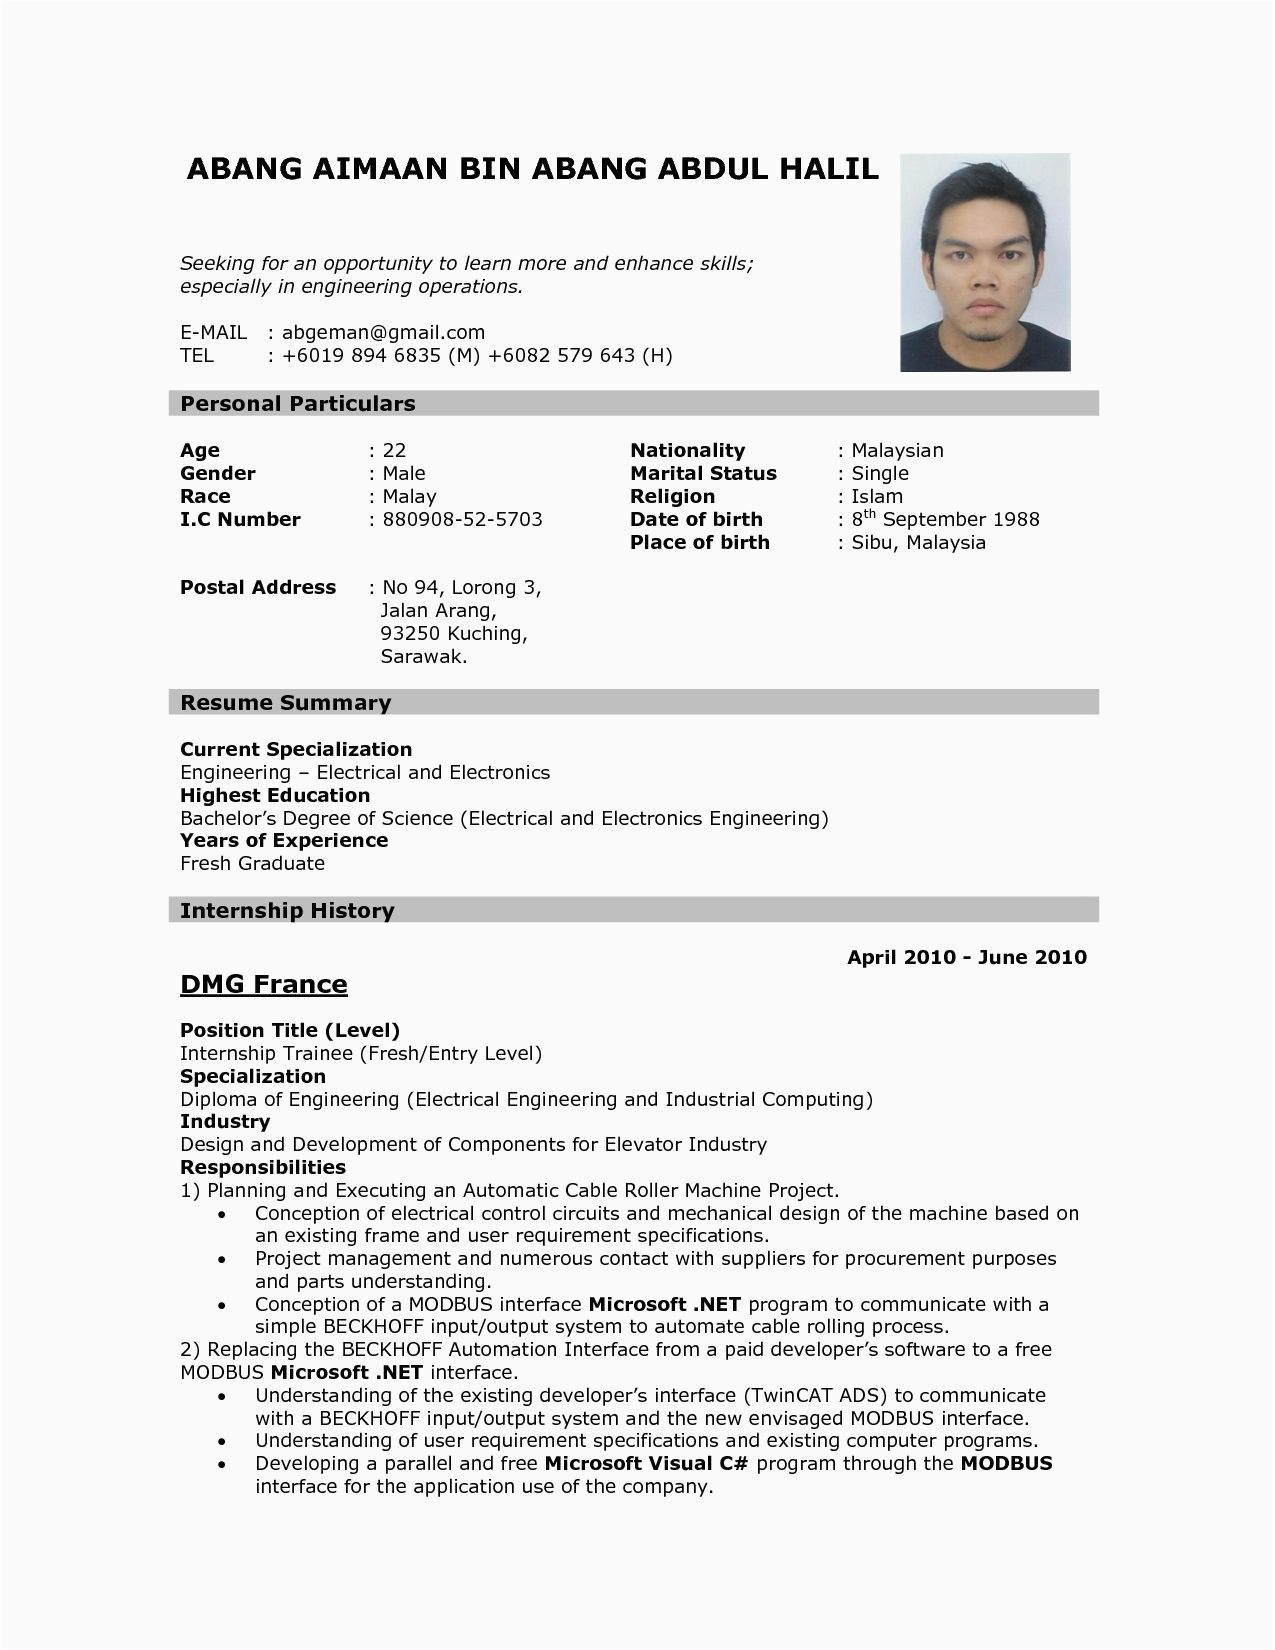 example of good resume for job